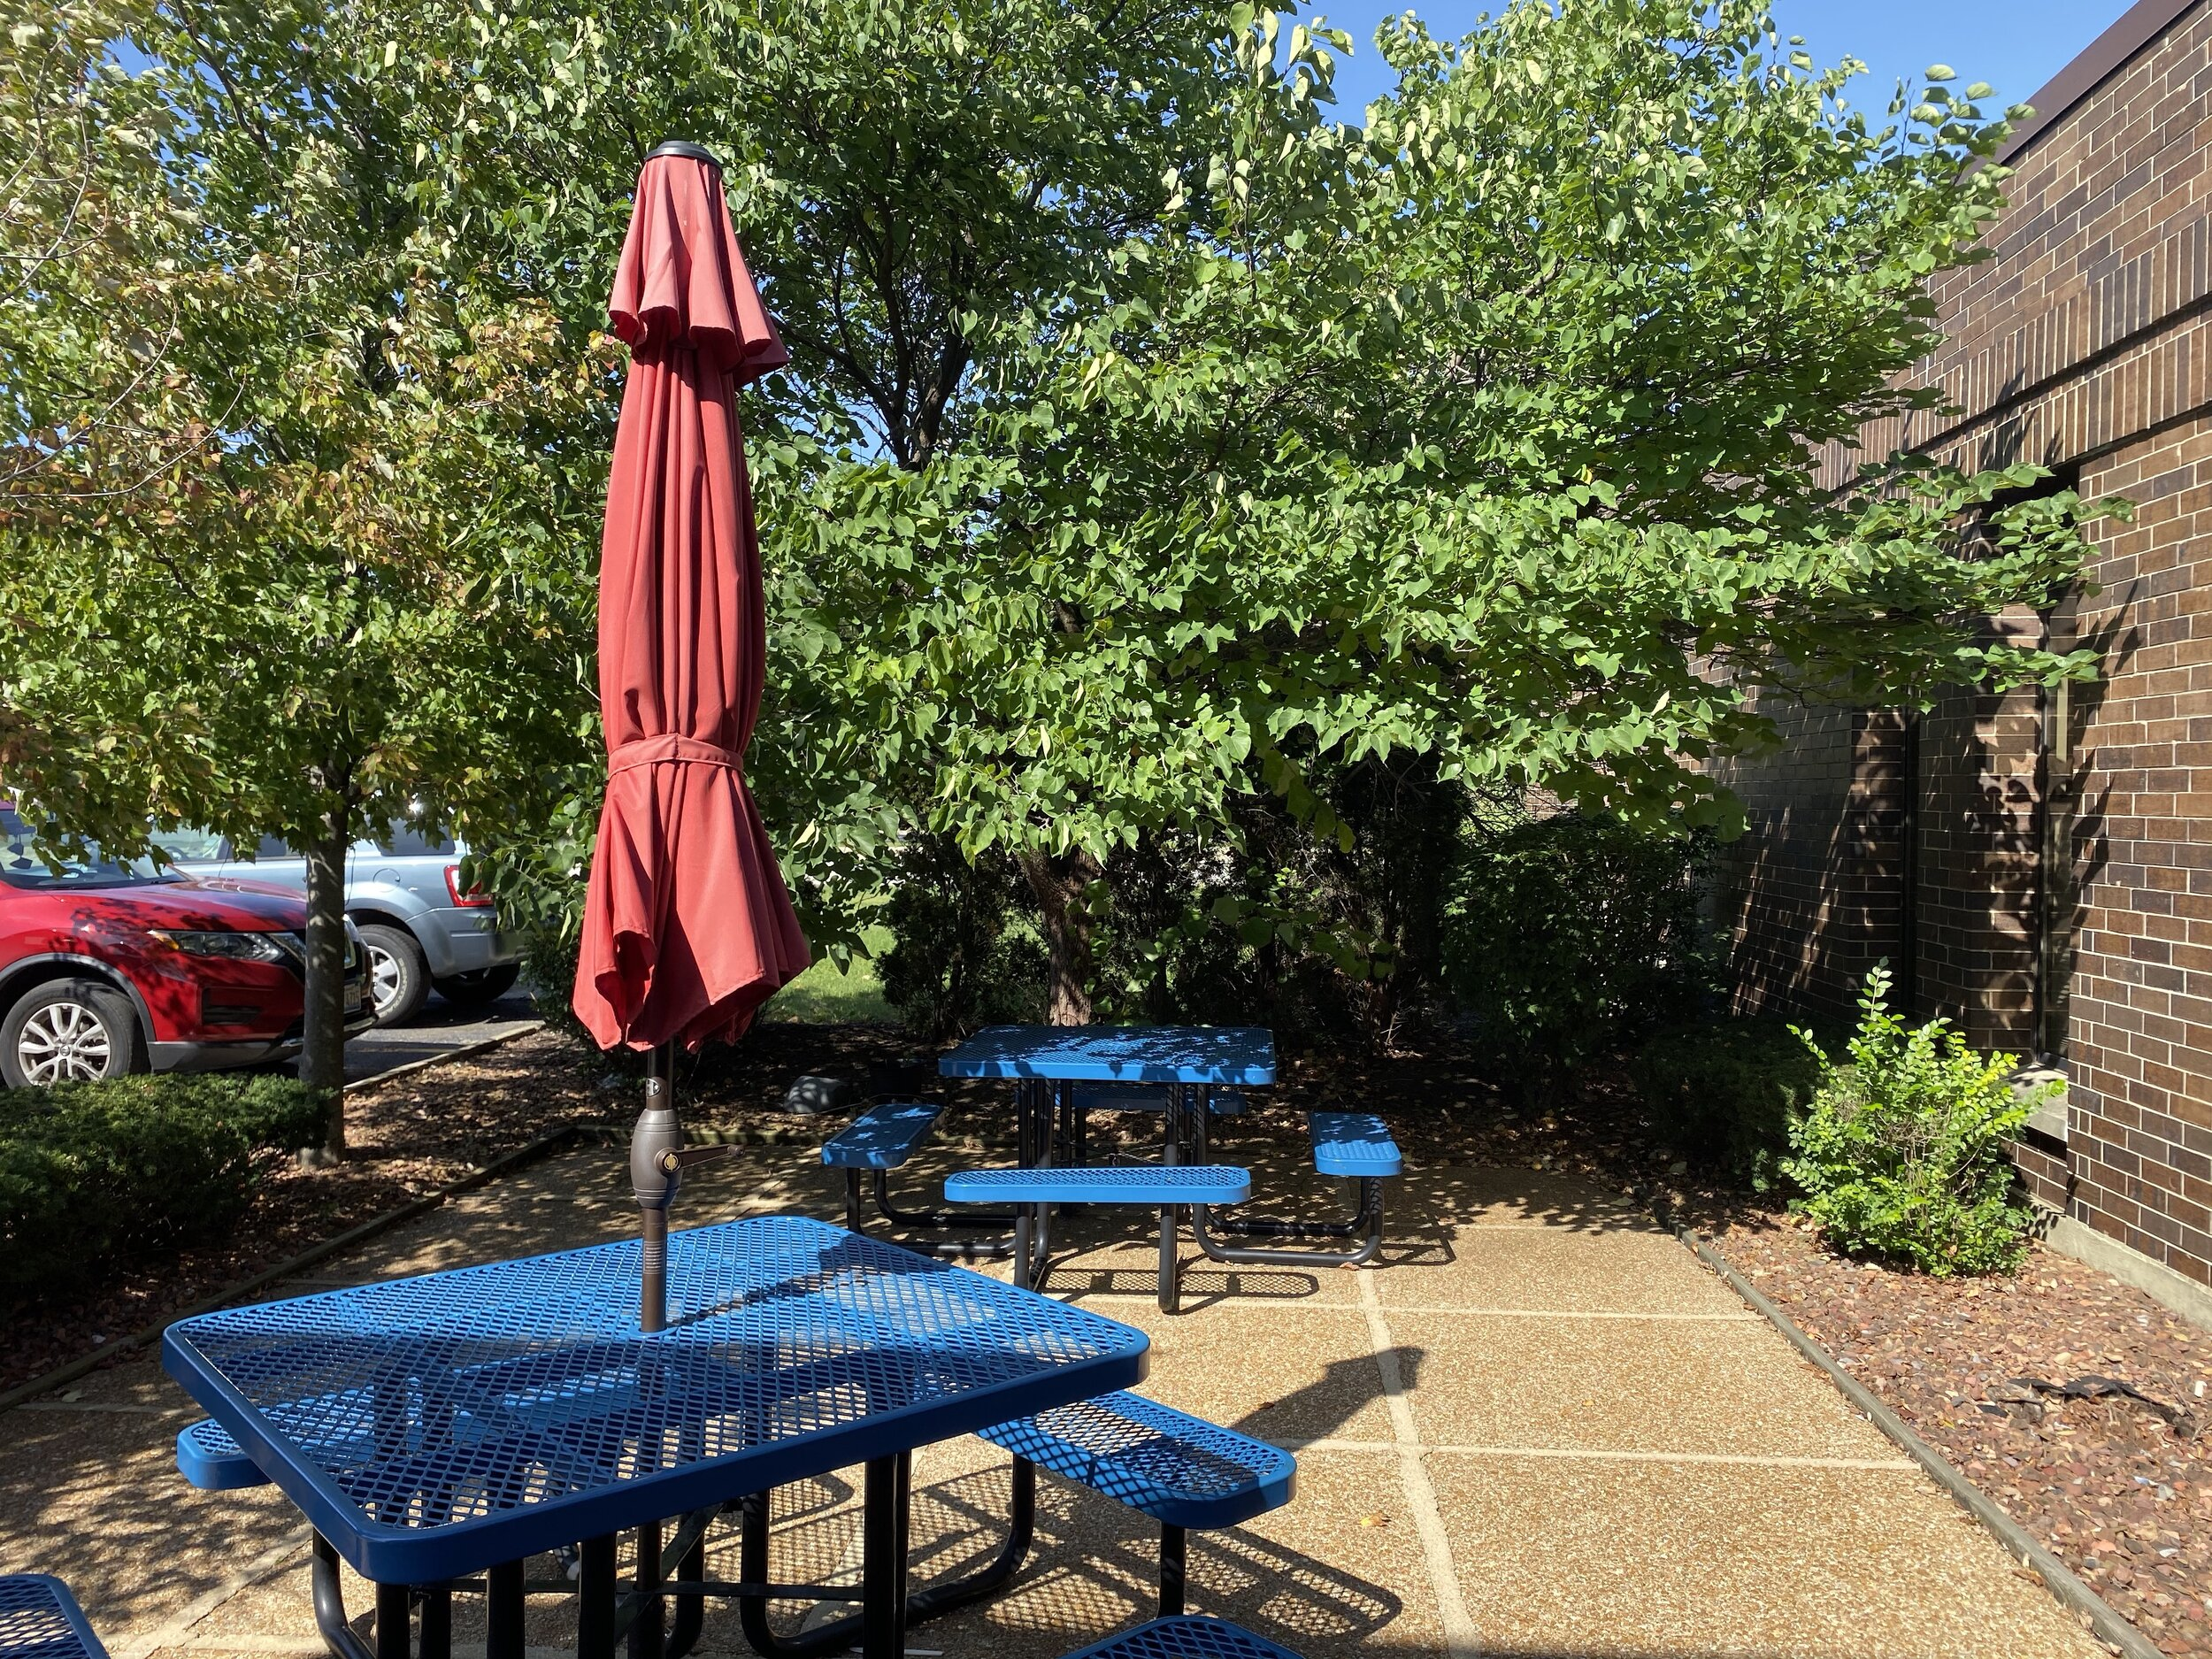 - The weather is getting colder as Autumn arrives, but we still get to enjoy lunches outside.